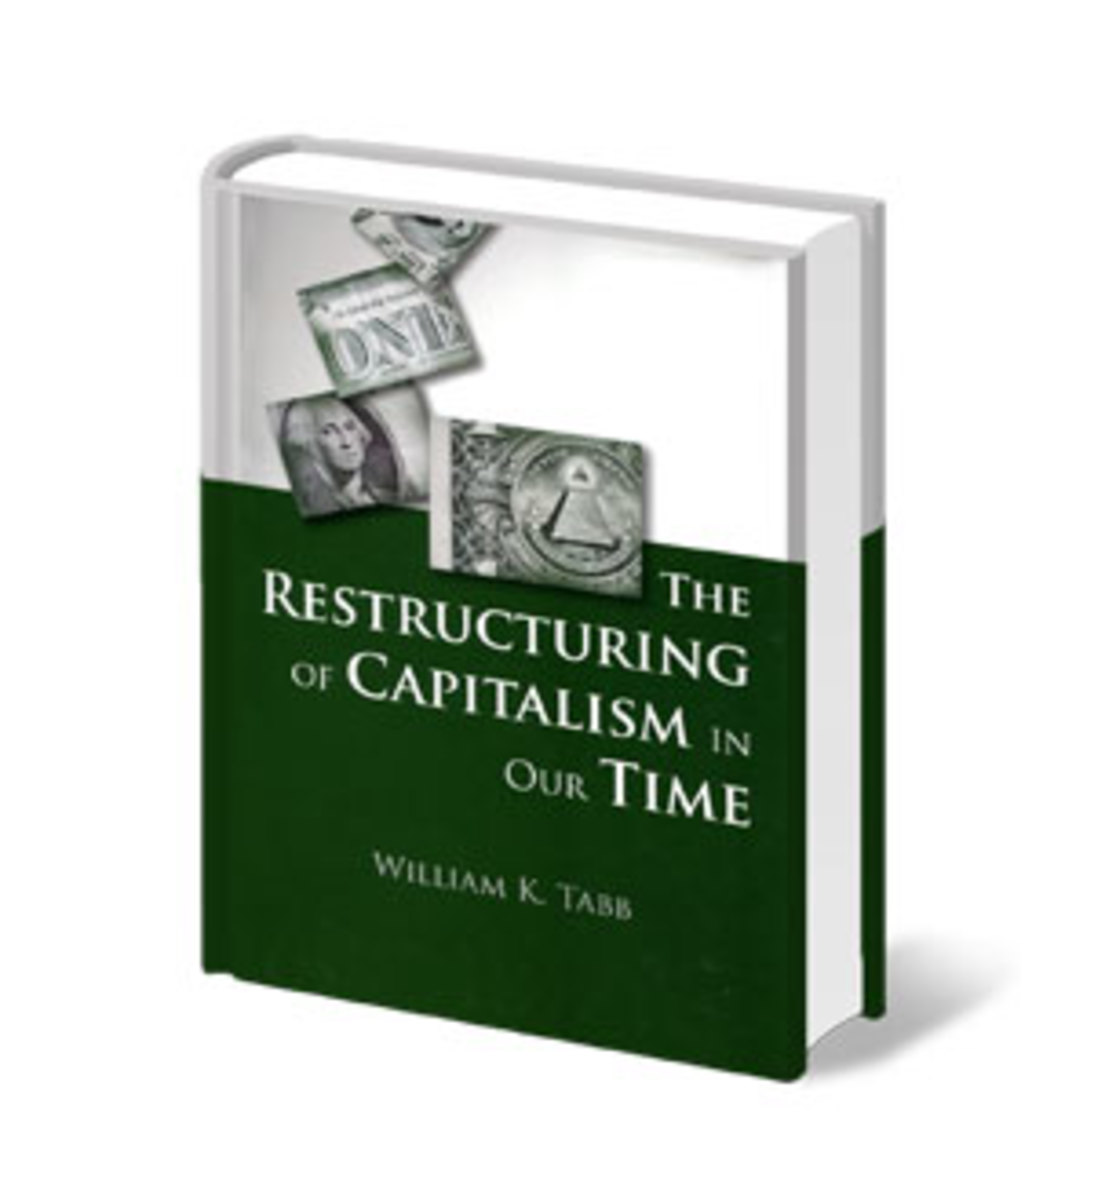 """The Restructuring of Capitalism in Our Time"" by William K. Tabb, Columbia University Press, 2012, $35"